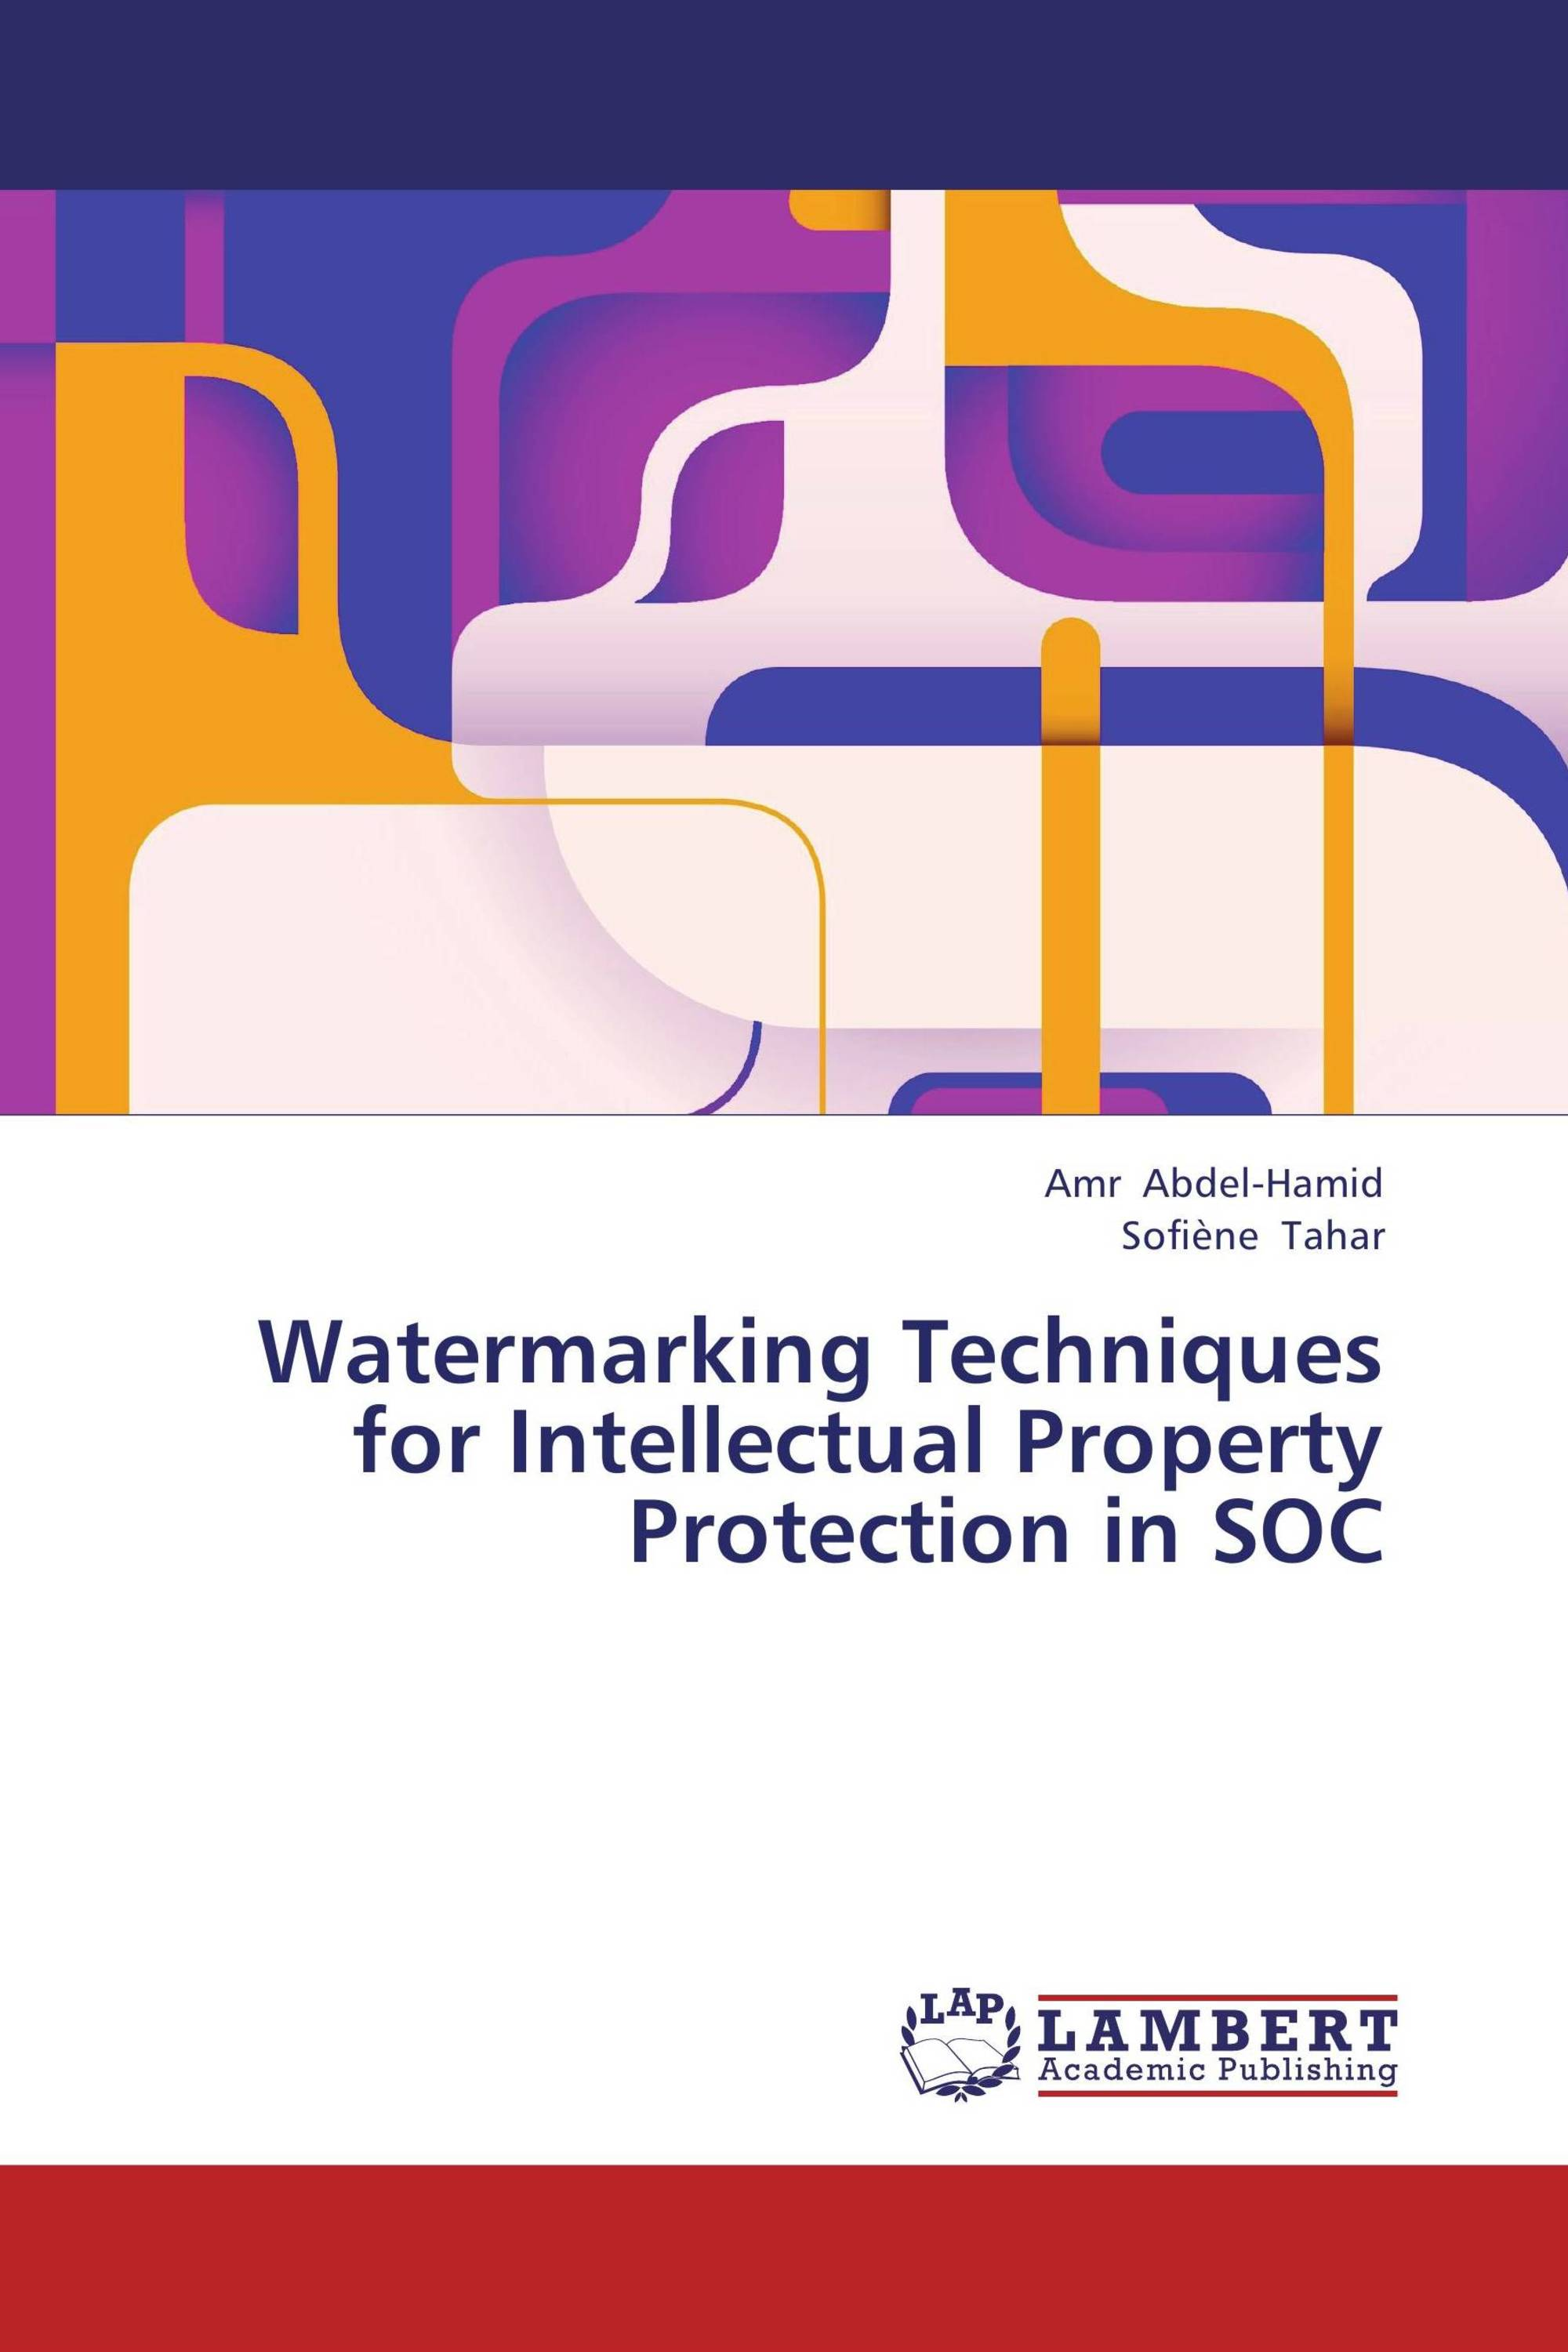 Watermarking Techniques for Intellectual Property Protection in SOC